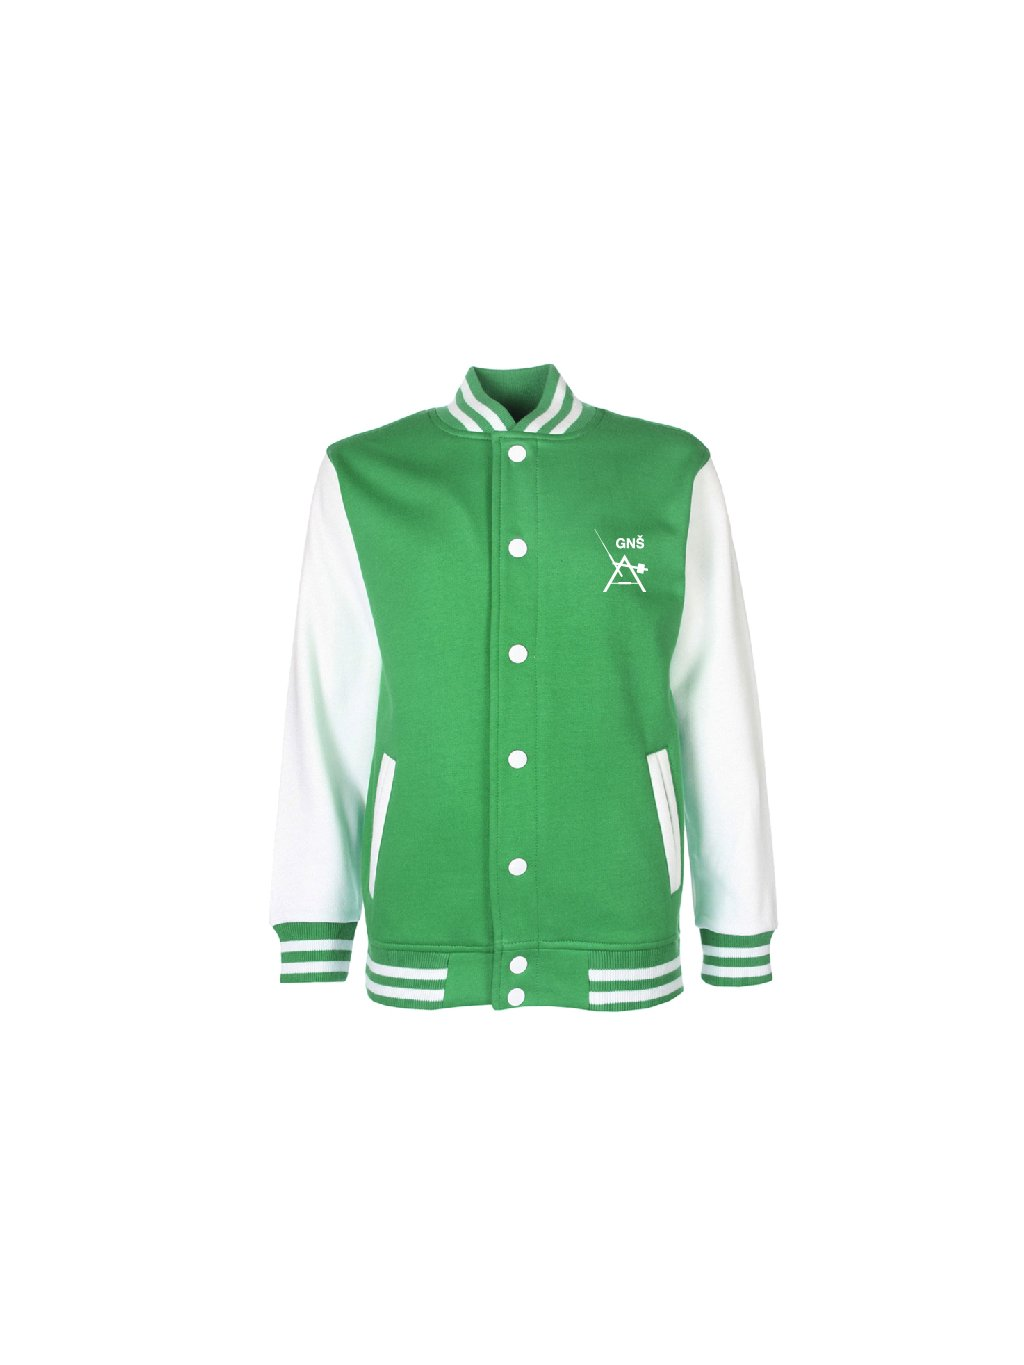 college dospele kelly green artic white